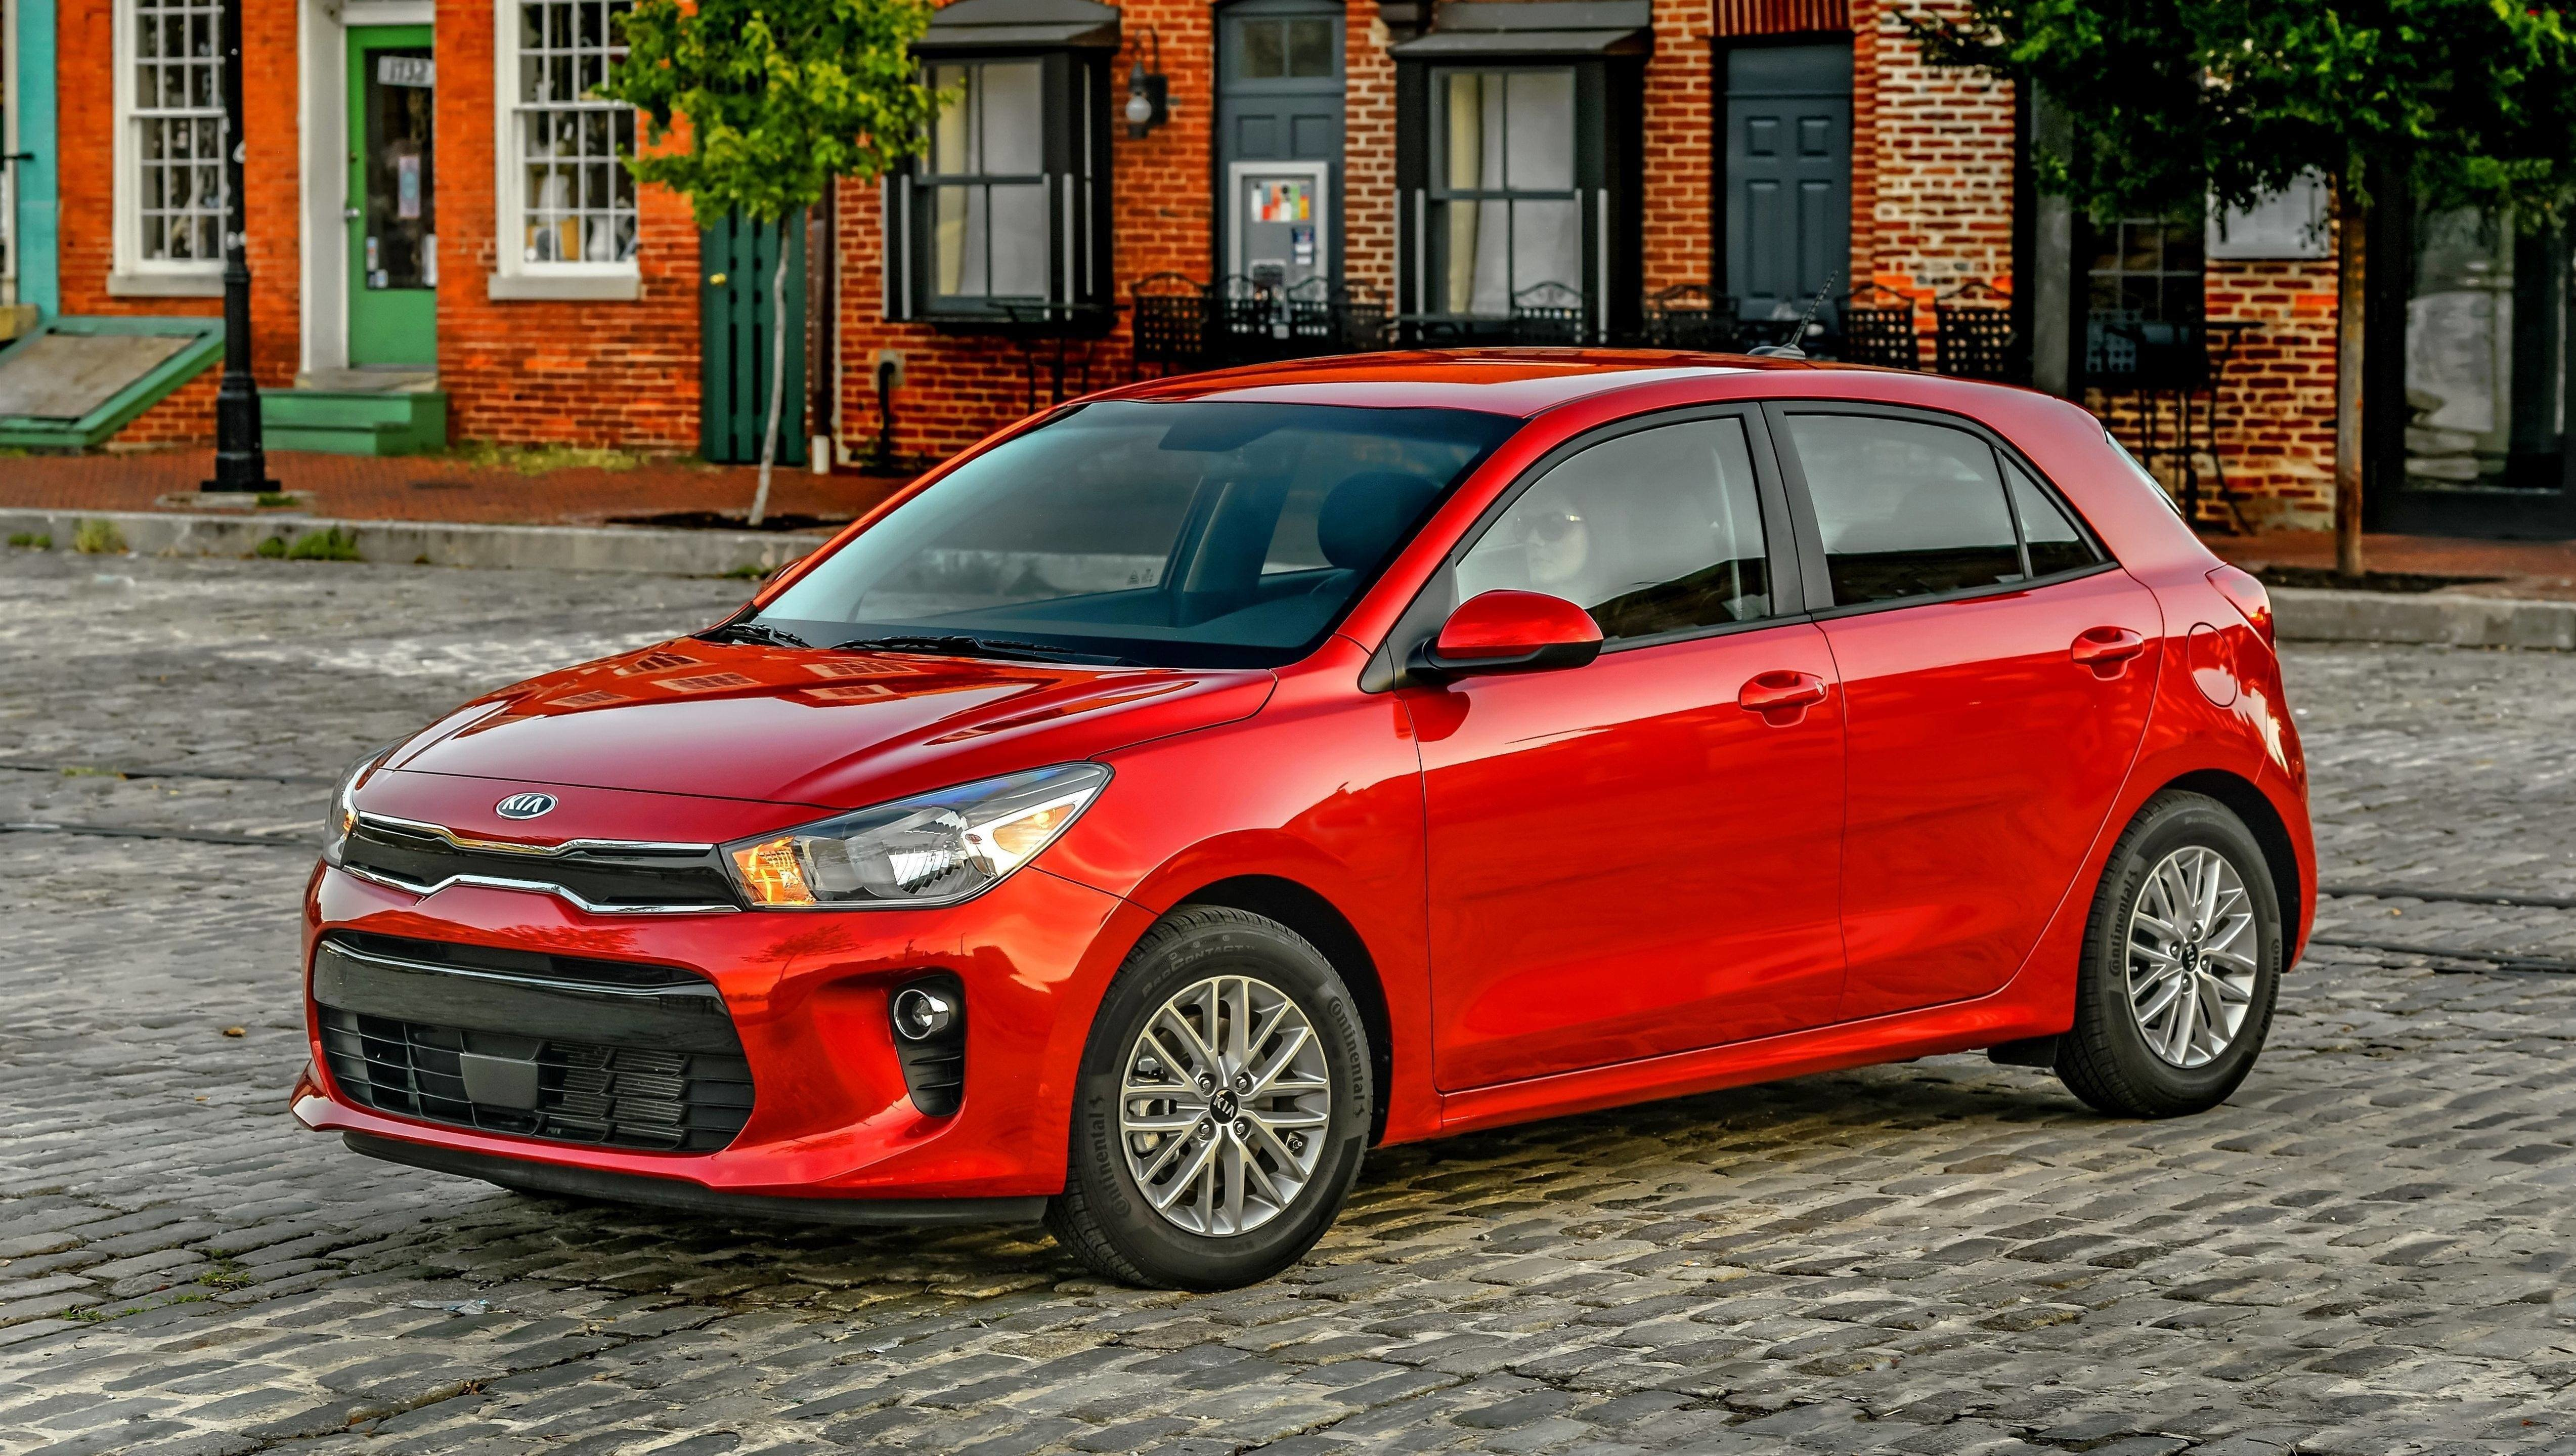 New Best Budget Friendly Small Cars Include Kia Honda And On This Month